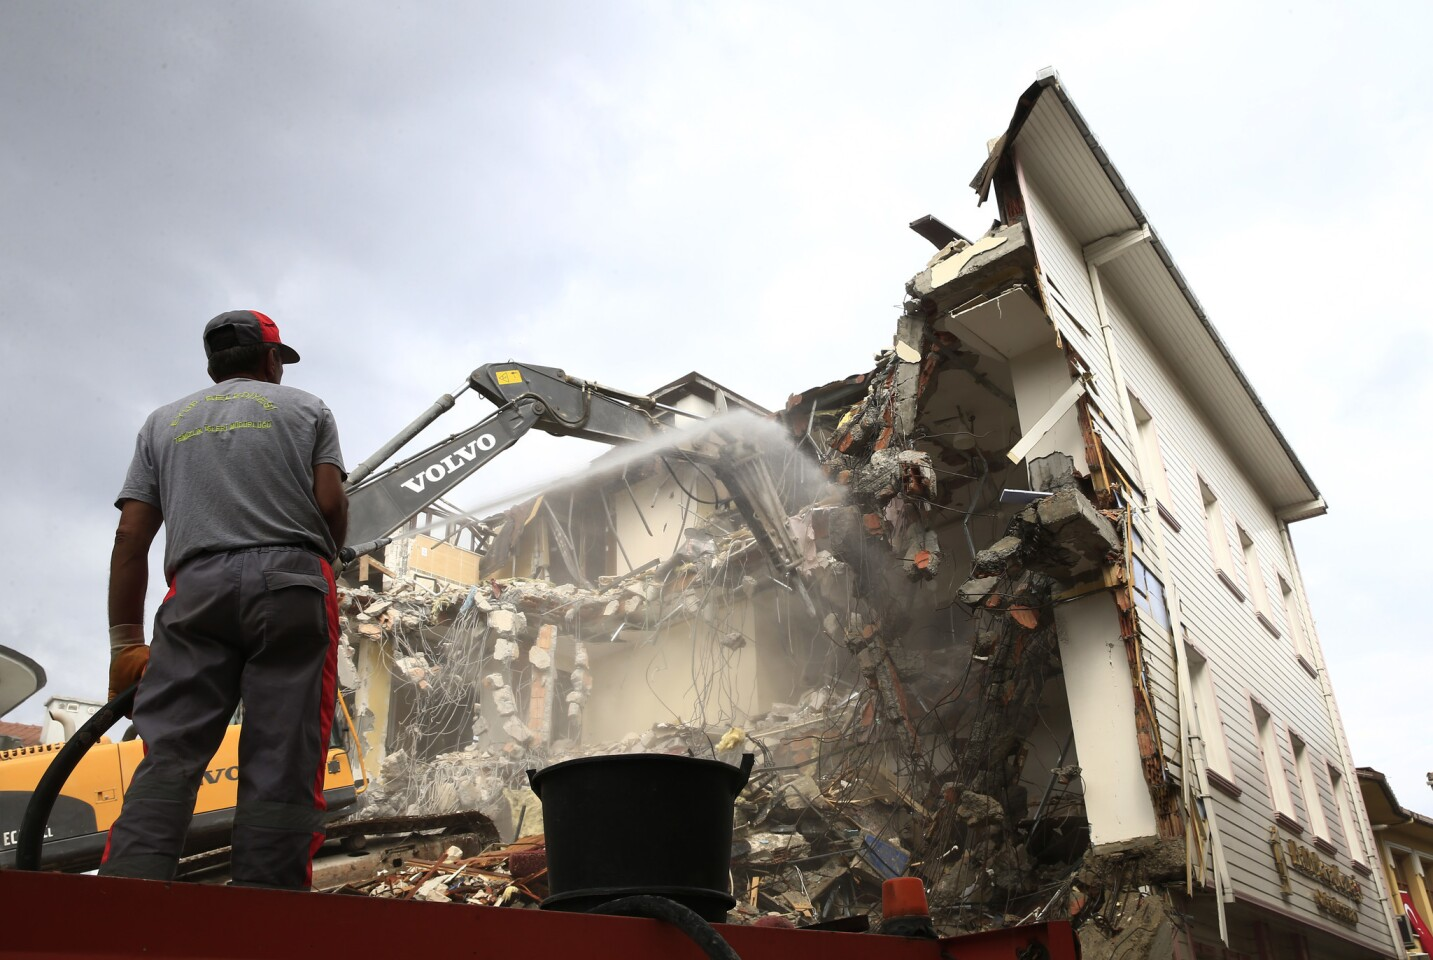 Workers in Istanbul demolish the Halit Pasa Residence hotel on July 20, 2016. According to the state-run Anadolu news agency, the hotel was allegedly the meeting point of the plotters who planned the failed July 15 coup.